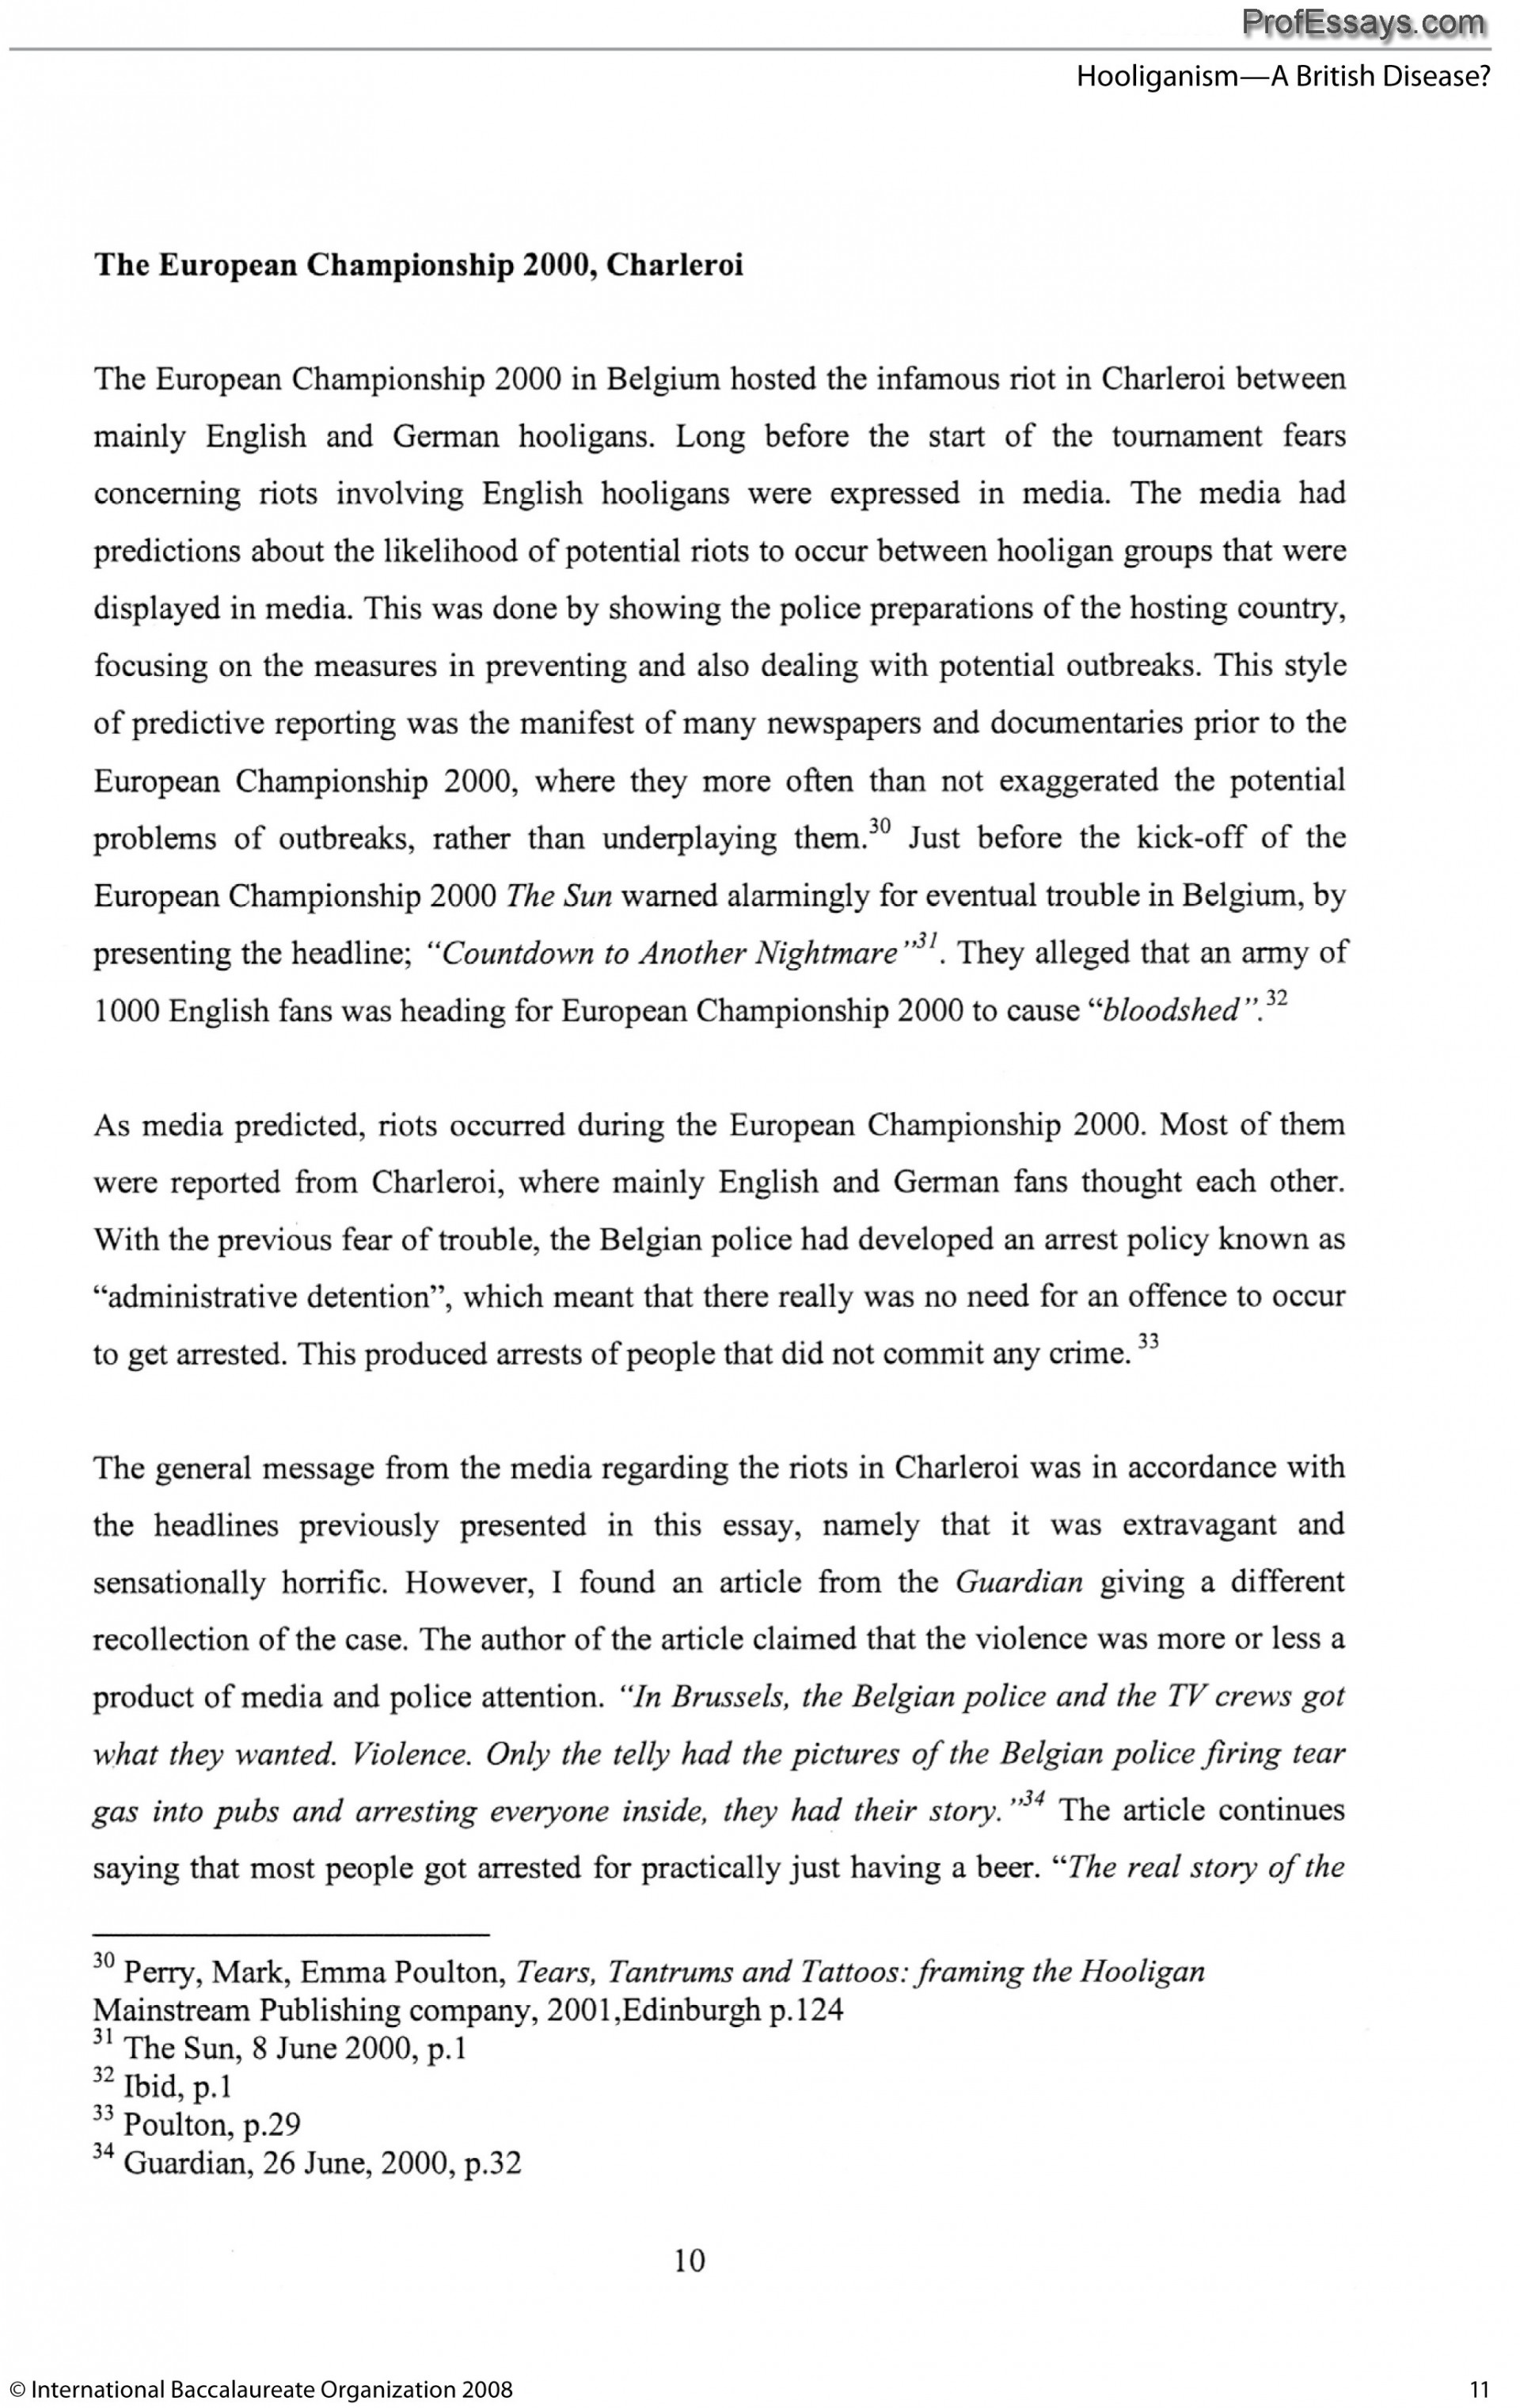 004 Essay Example Online Essays Ib Extended Free Amazing For Sale Proofreading Sell Uk 1920